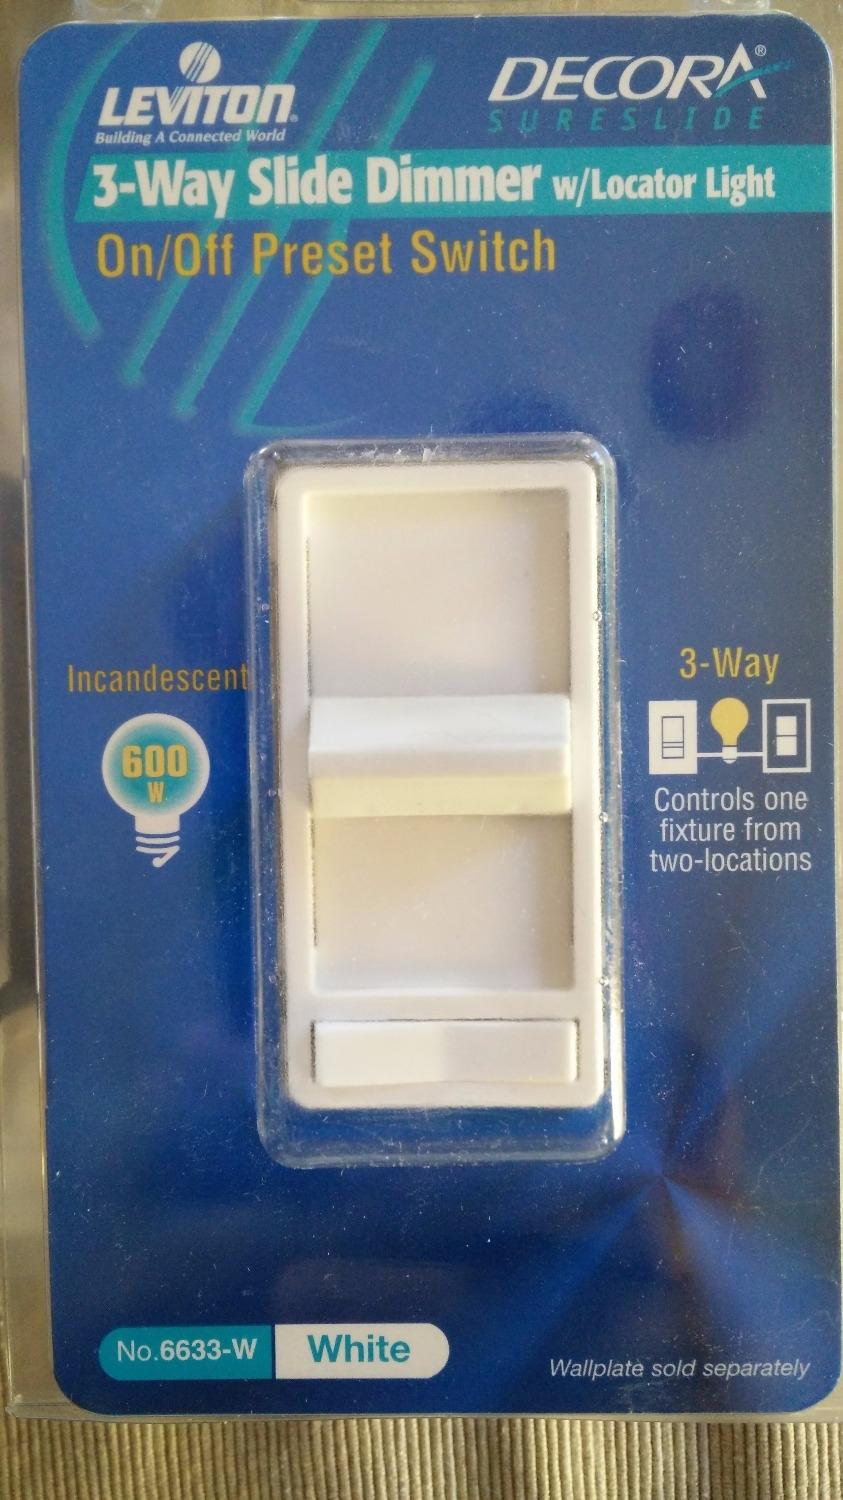 Find More 4 X Leviton Decora On Off Dimmer 3 Way White For Sale At Switch Make Up To 90